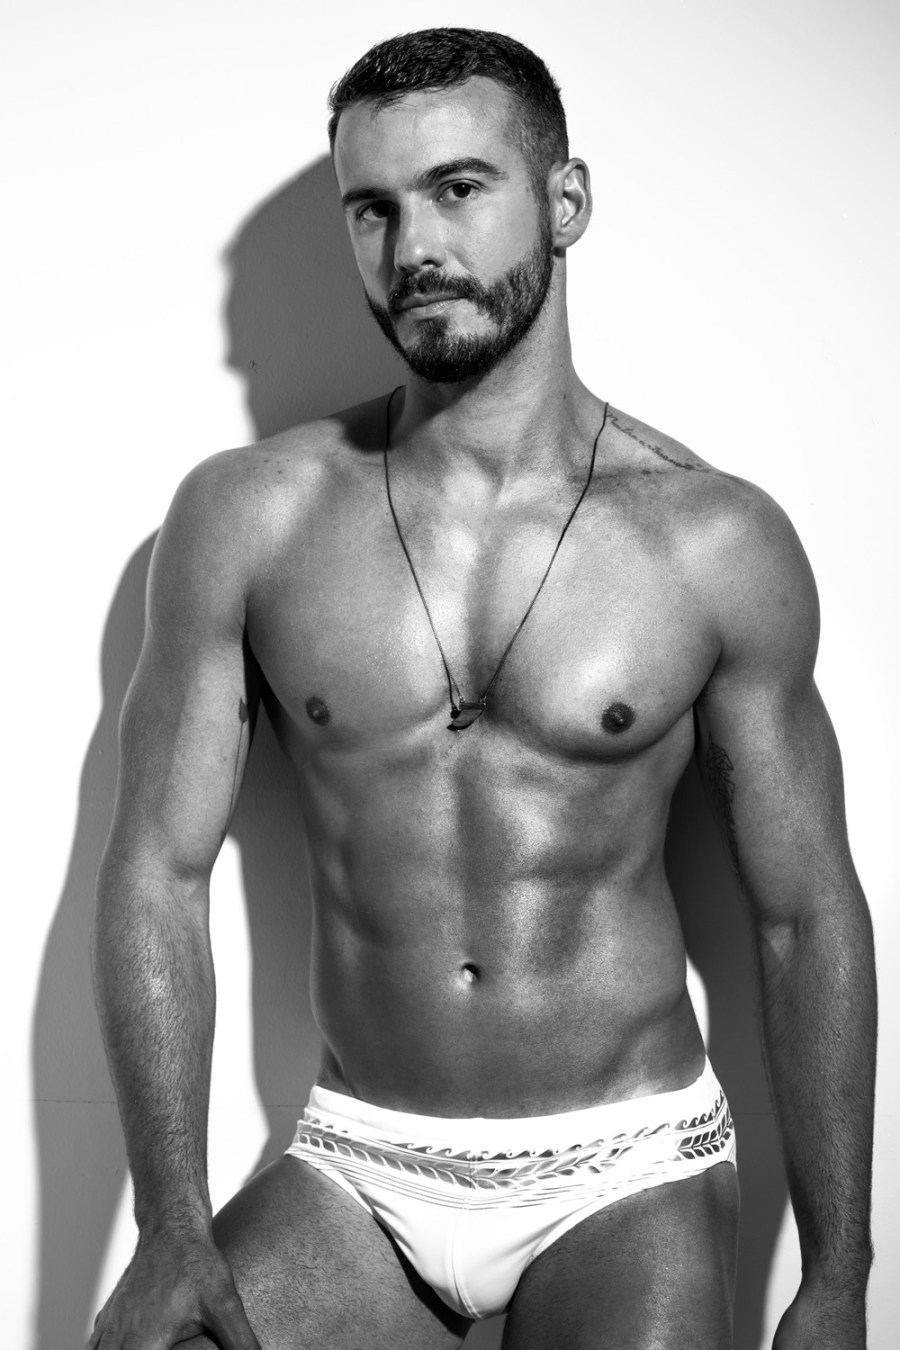 Then comes this at my inbox, suddenly I star to open my eyes to see this Brazilian lad is not shy at all, here's Rogério Franco hunk sexy based in Brasilia shot by Thiago Lanham.